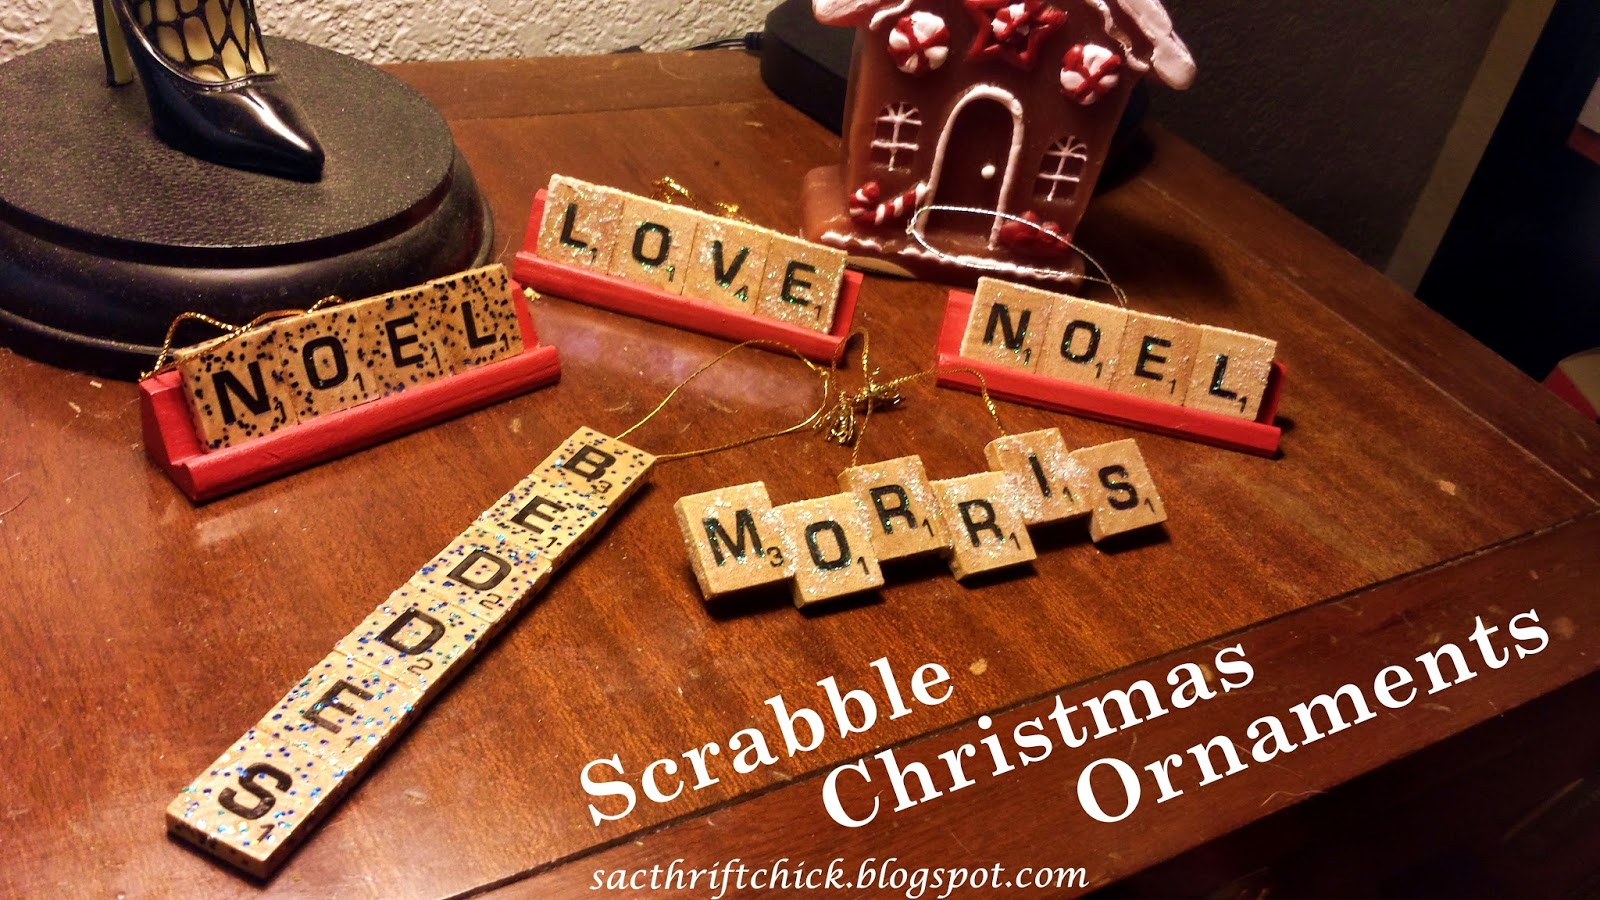 DIY Tile Crafts: How to Make Scrabble Ornaments and Scrabble ...